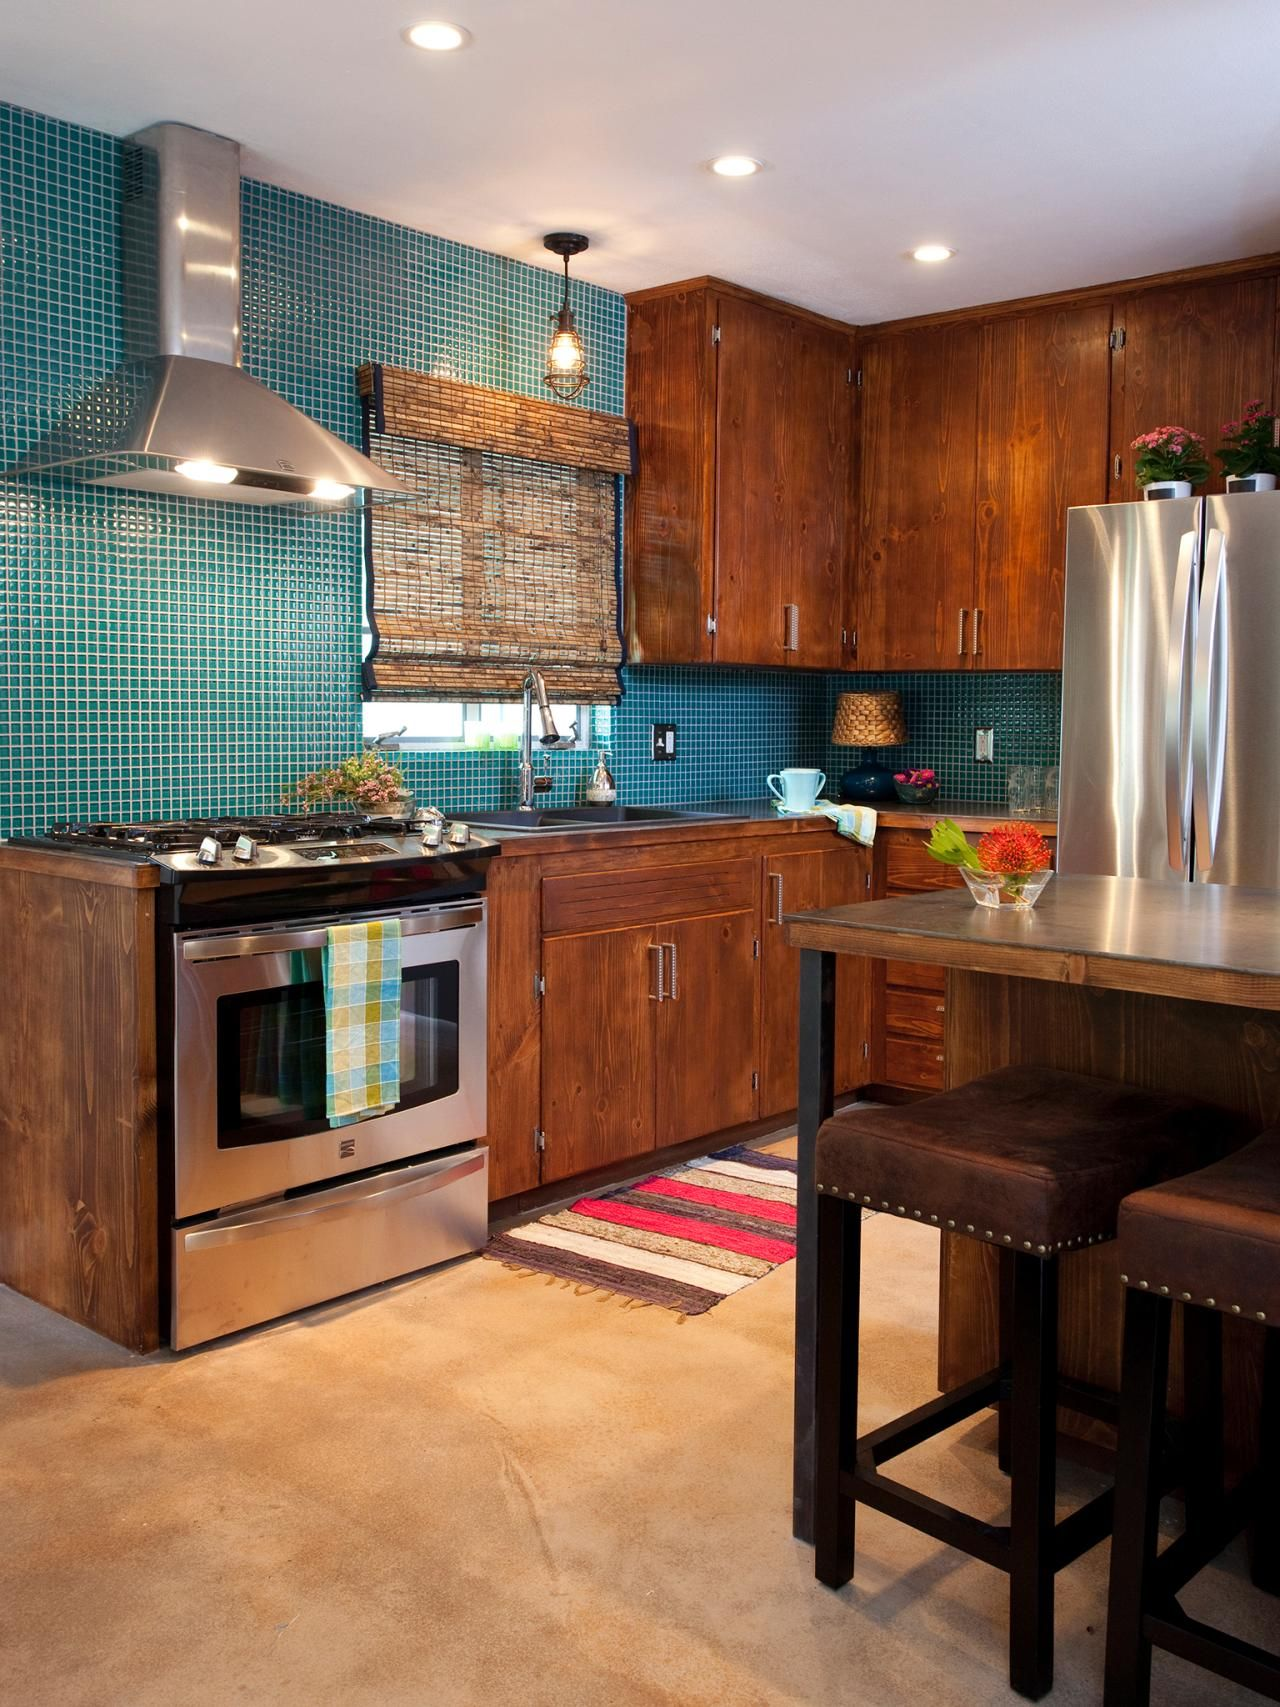 Diy Painting Kitchen Cabinets Ideas Pictures From Hgtv Kitchen Design Color Kitchen Cabinet Color Options Best Kitchen Cabinets